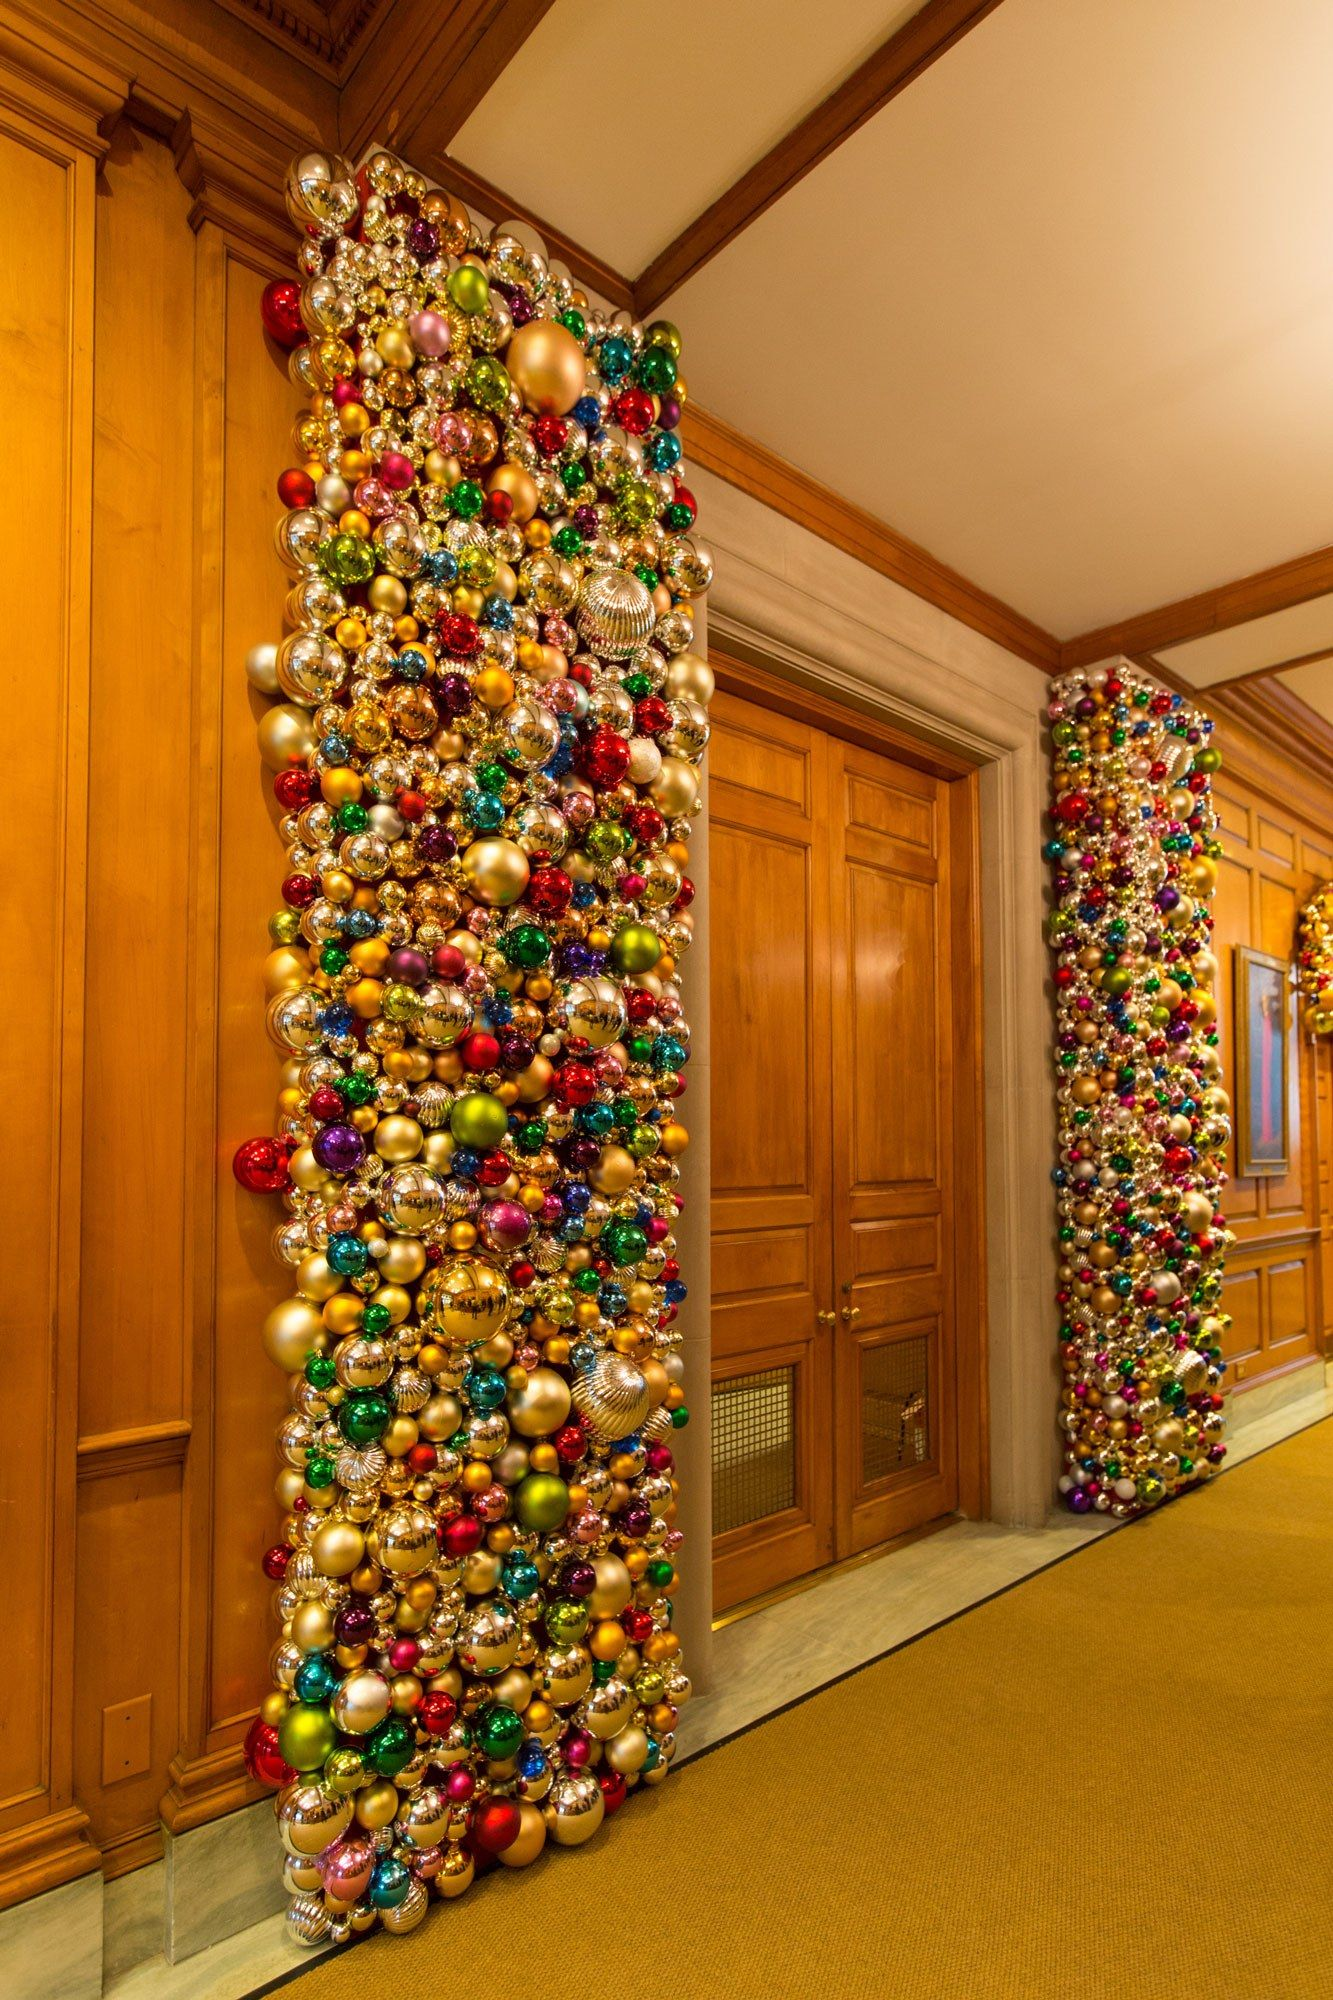 White House Decorations Christmas 2019 Inside the 2015 White House Christmas Decorations Created by